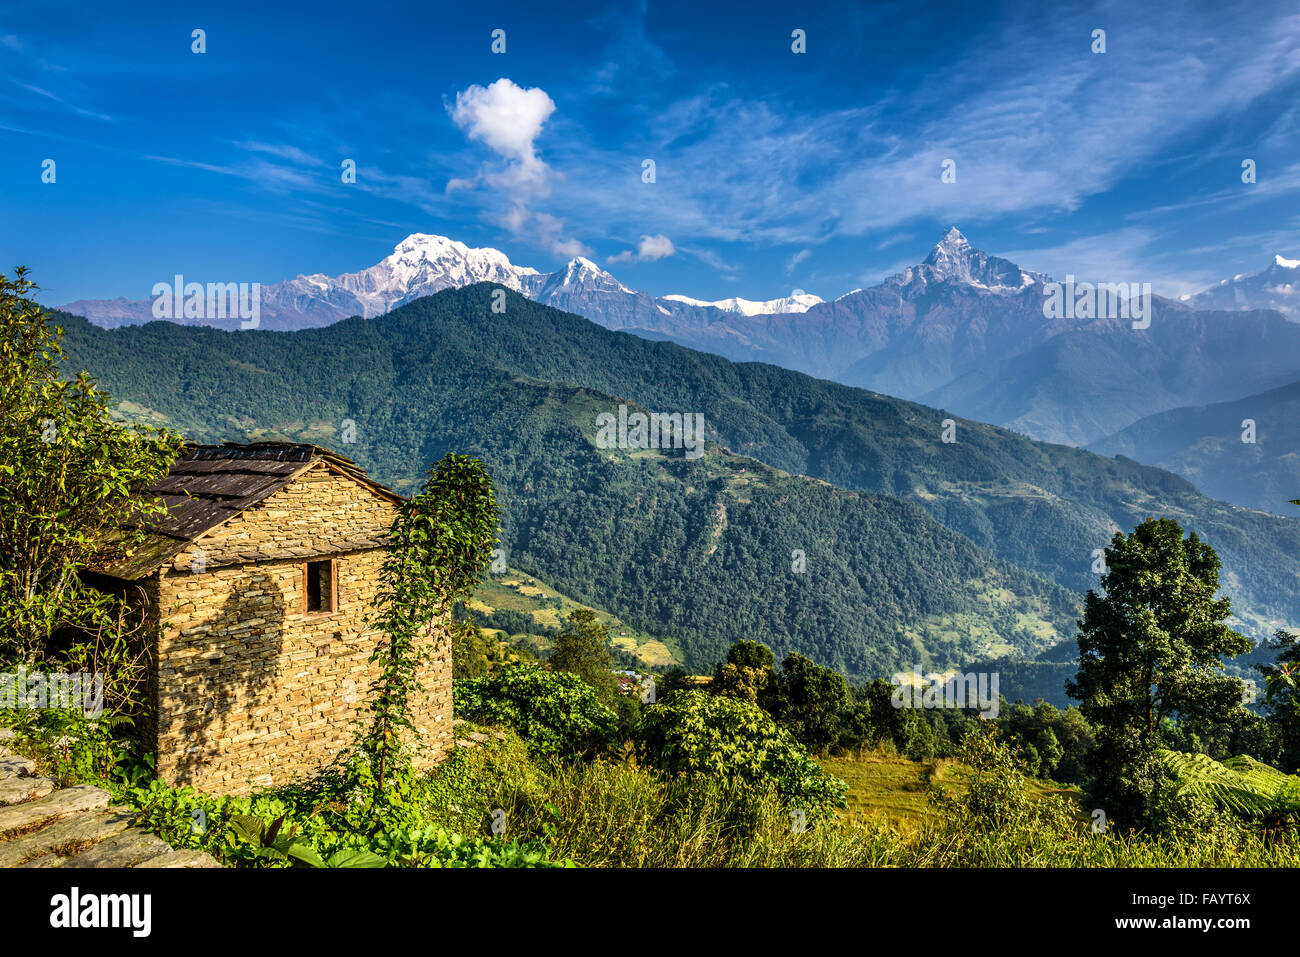 Himalaya mountains and old stone cabin near Pokhara in Nepal - Stock Image